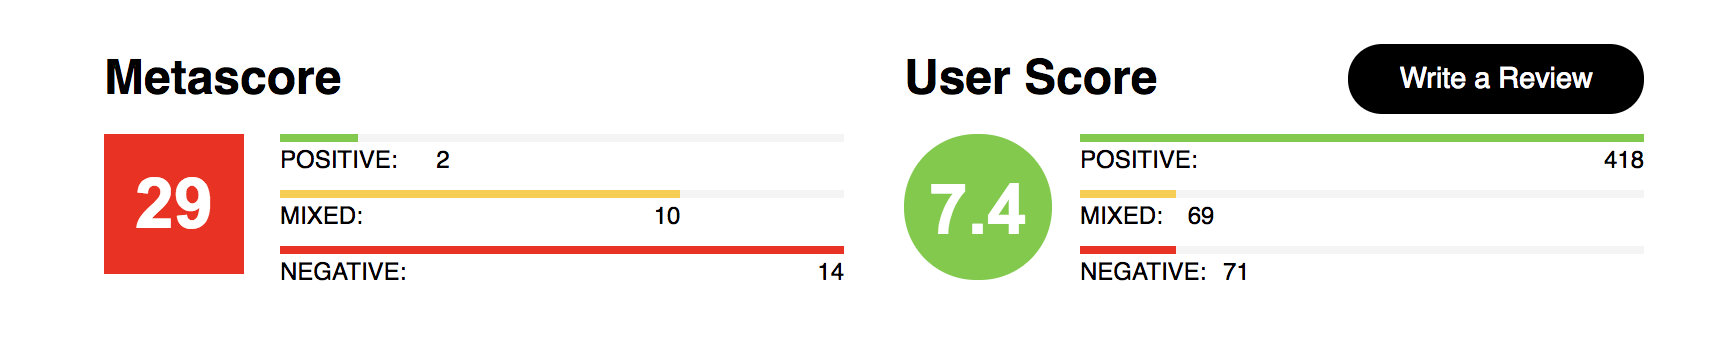 bright-metascore-vs-userscore